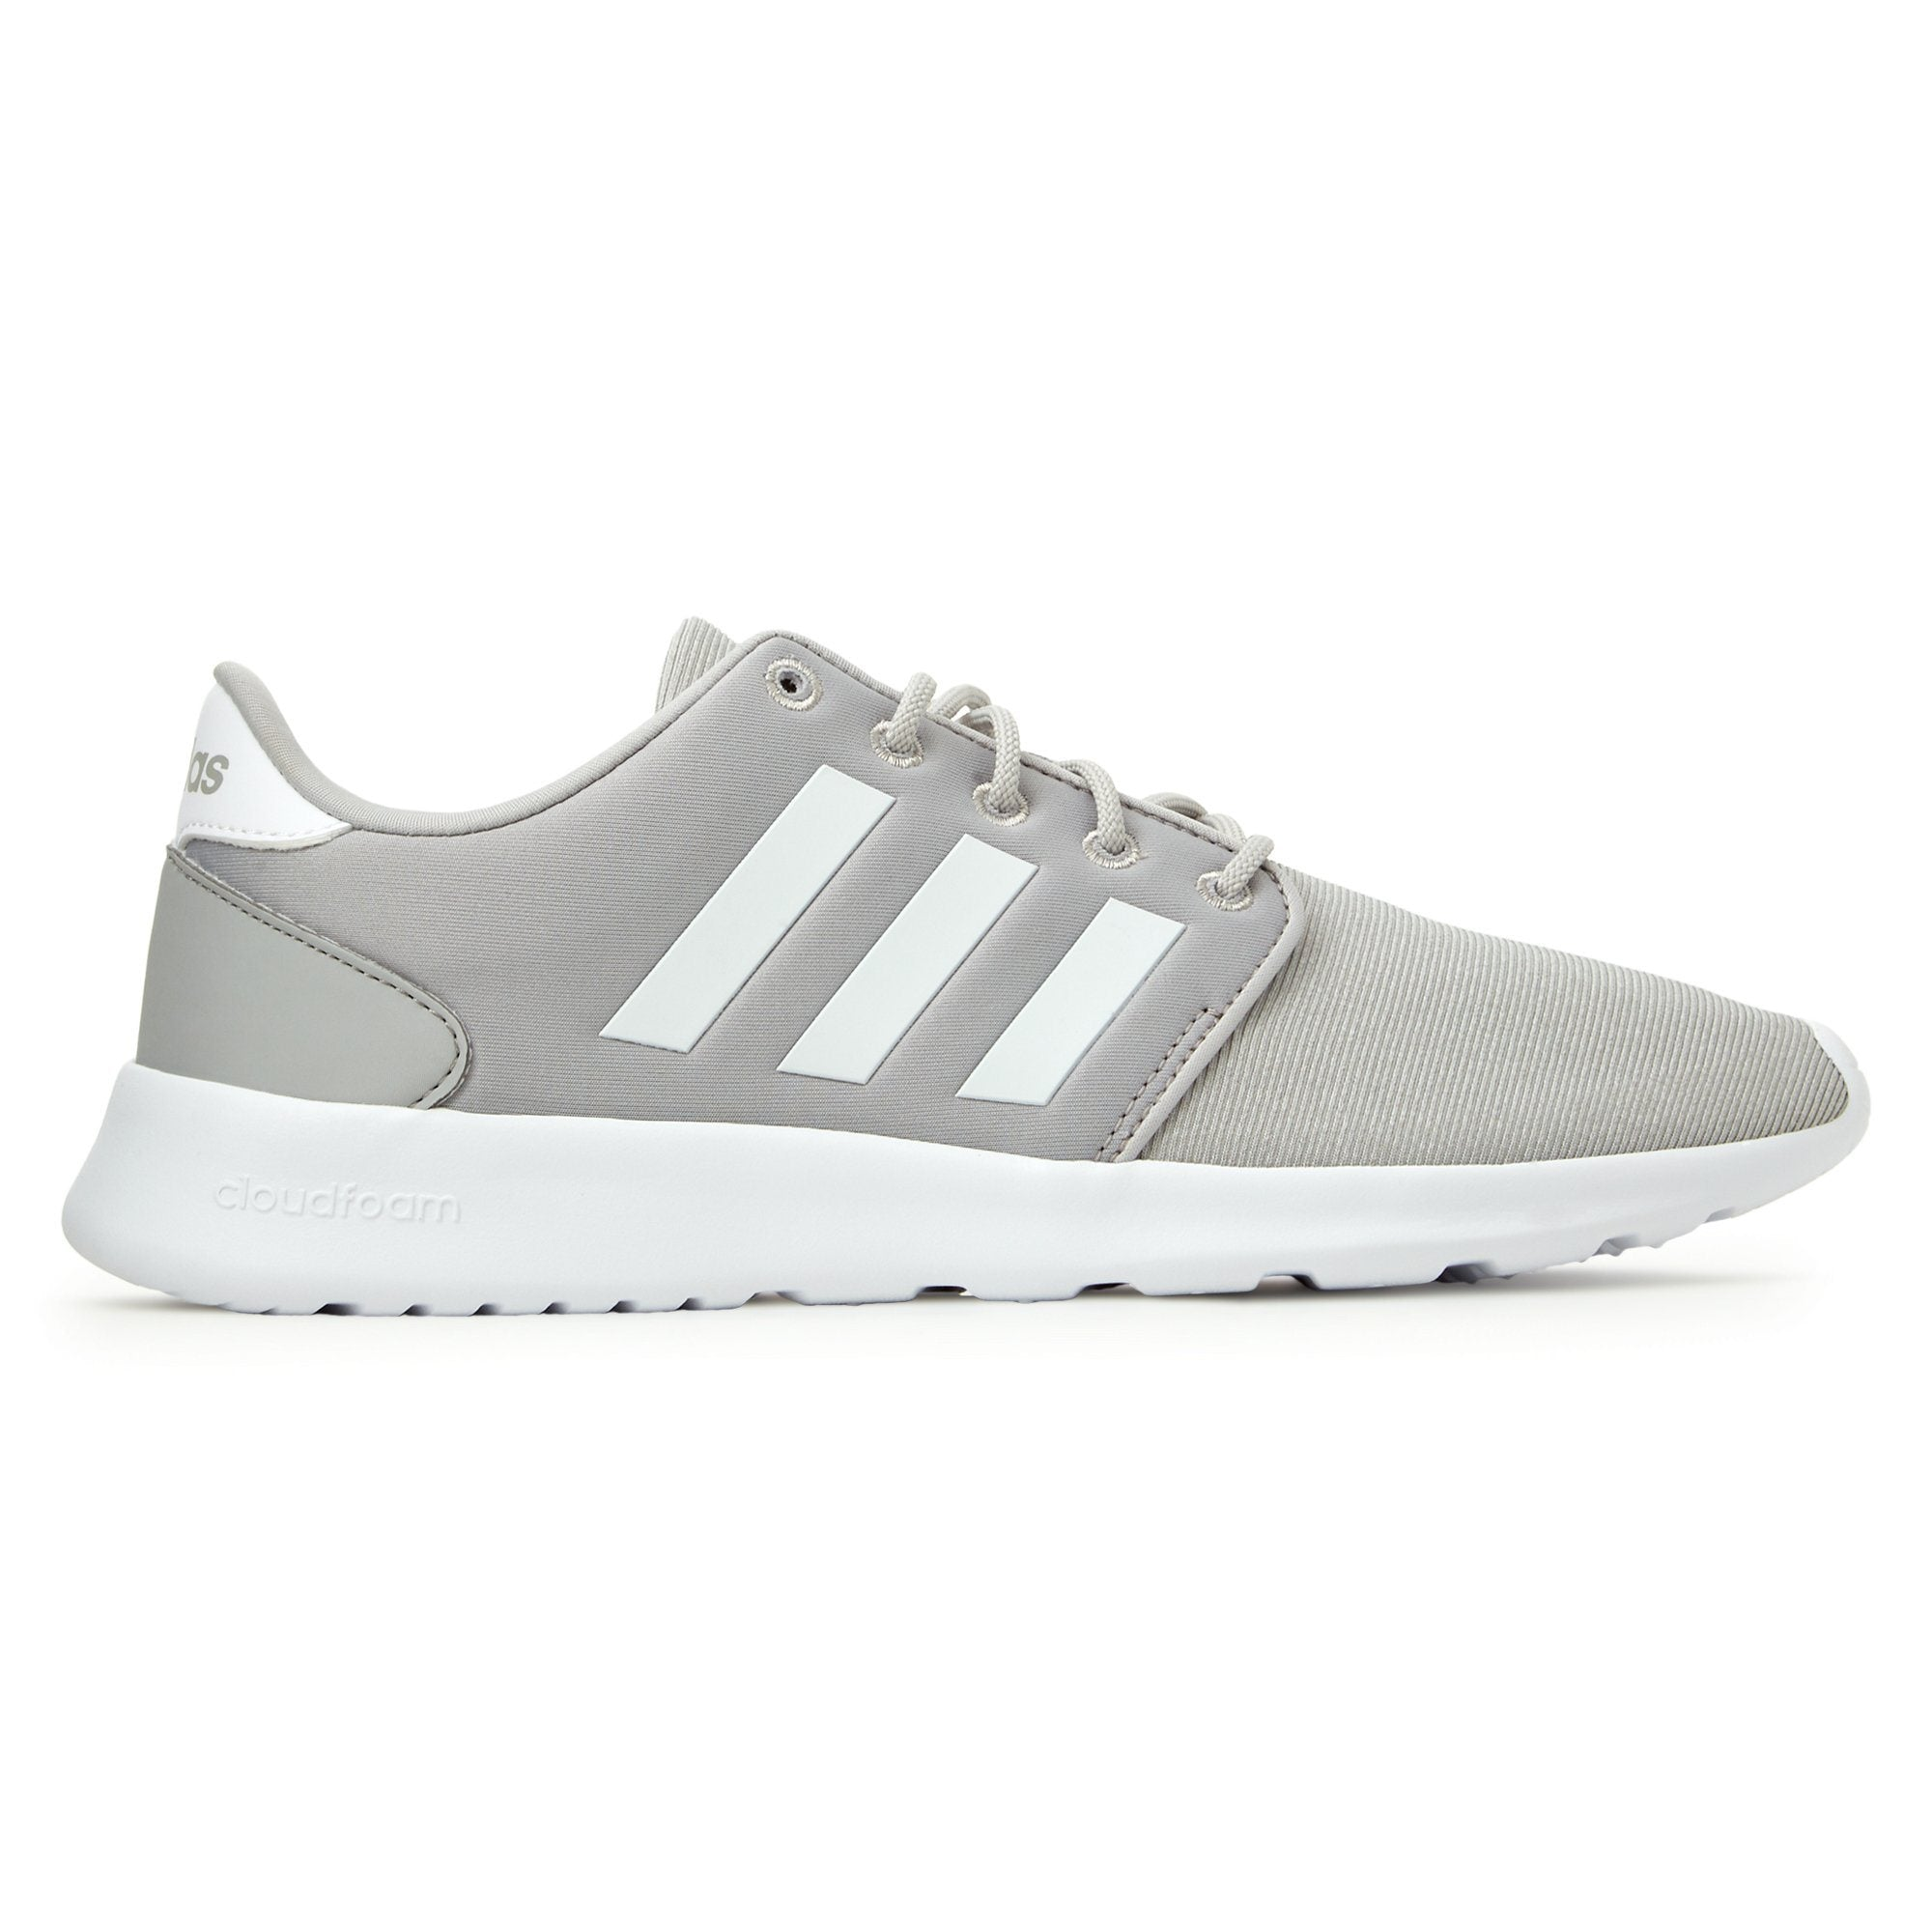 Adidas Women's Cloudfoam QT Racer - Grey One/ftwr White/Grey Two Footwear Adidas